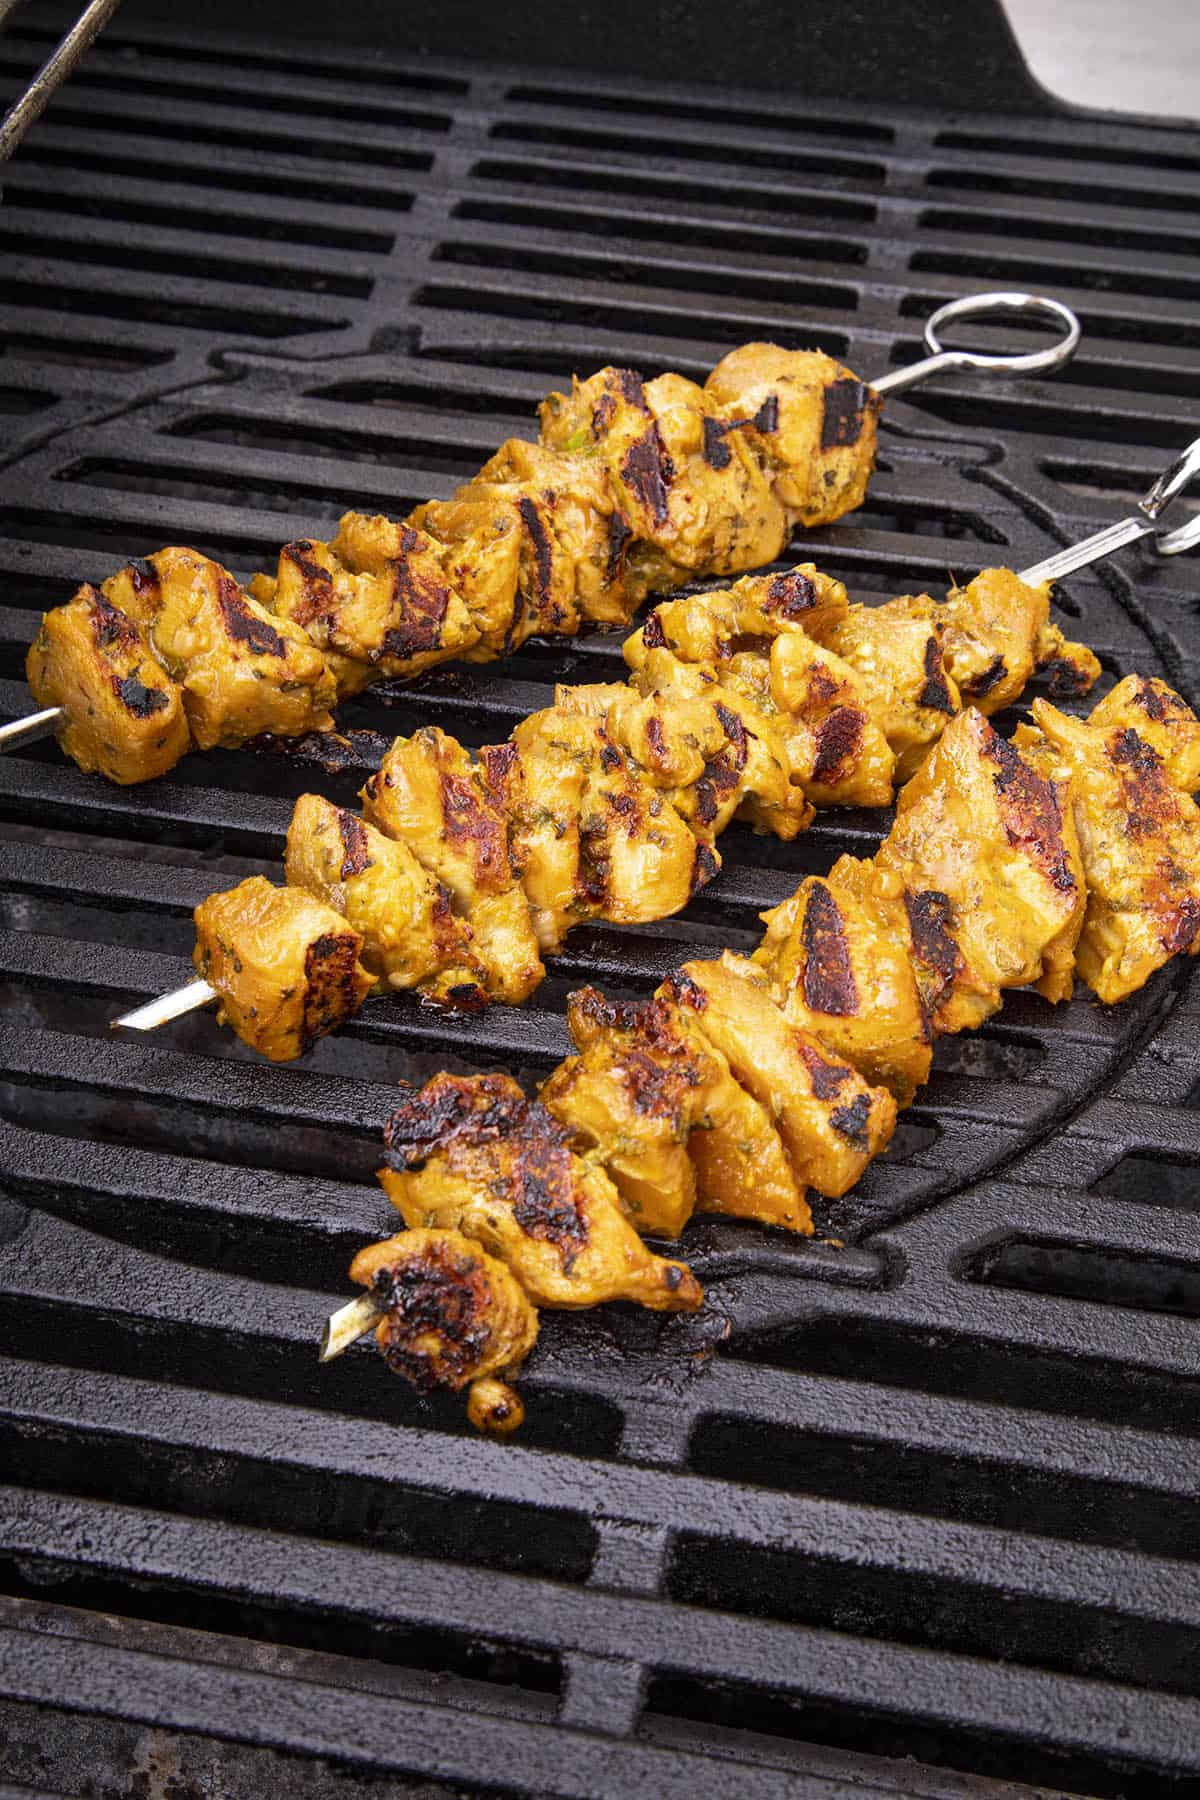 Chicken satay skewers on the grill